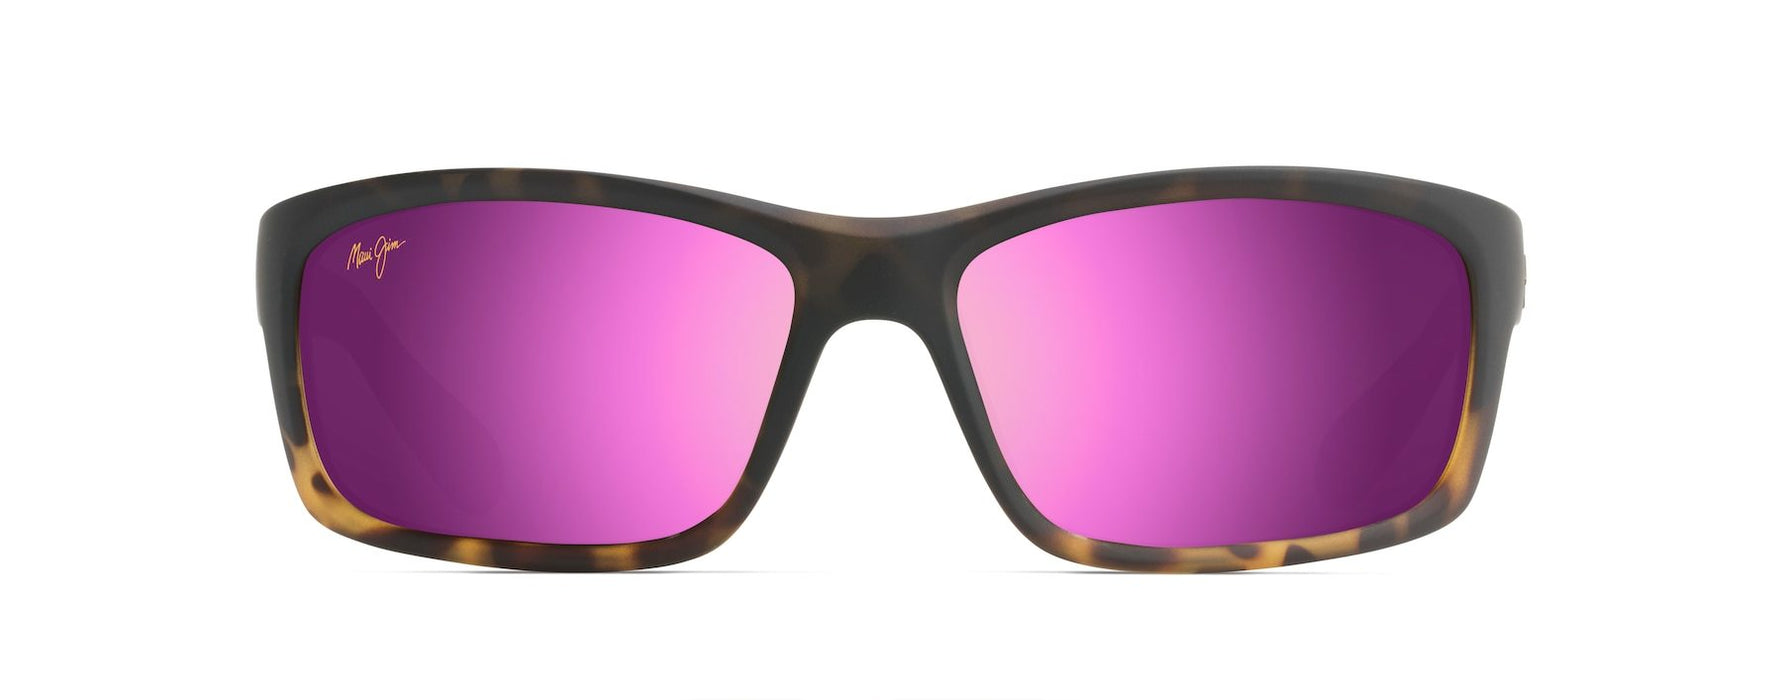 MyMaui Kanaio Coast MM766-024 Sunglasses